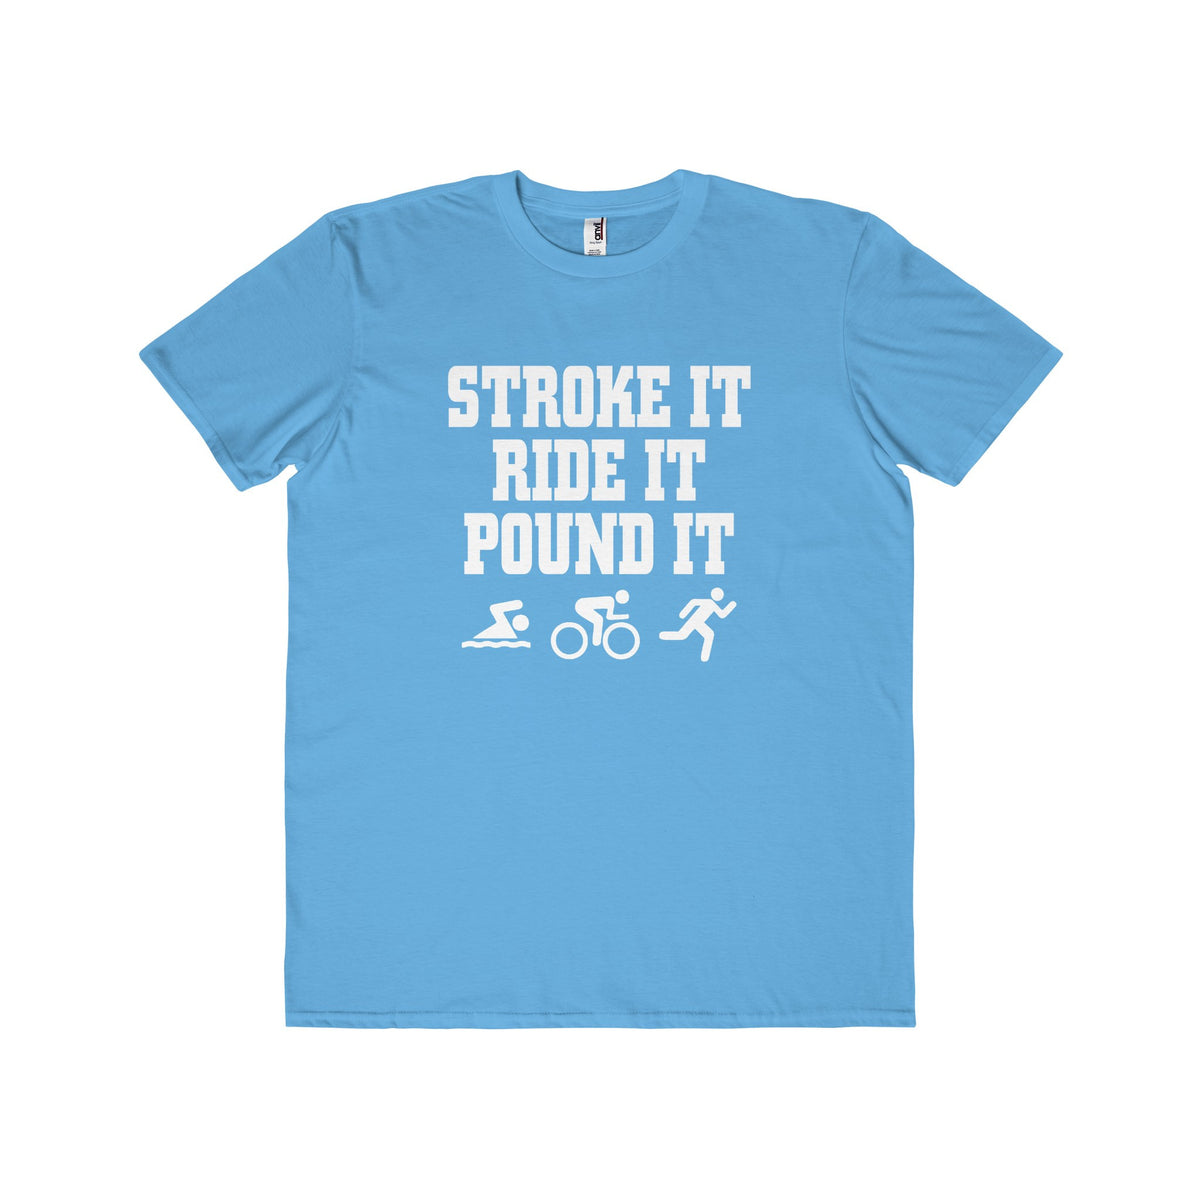 'Stroke Ride Pound' Lightweight Tee